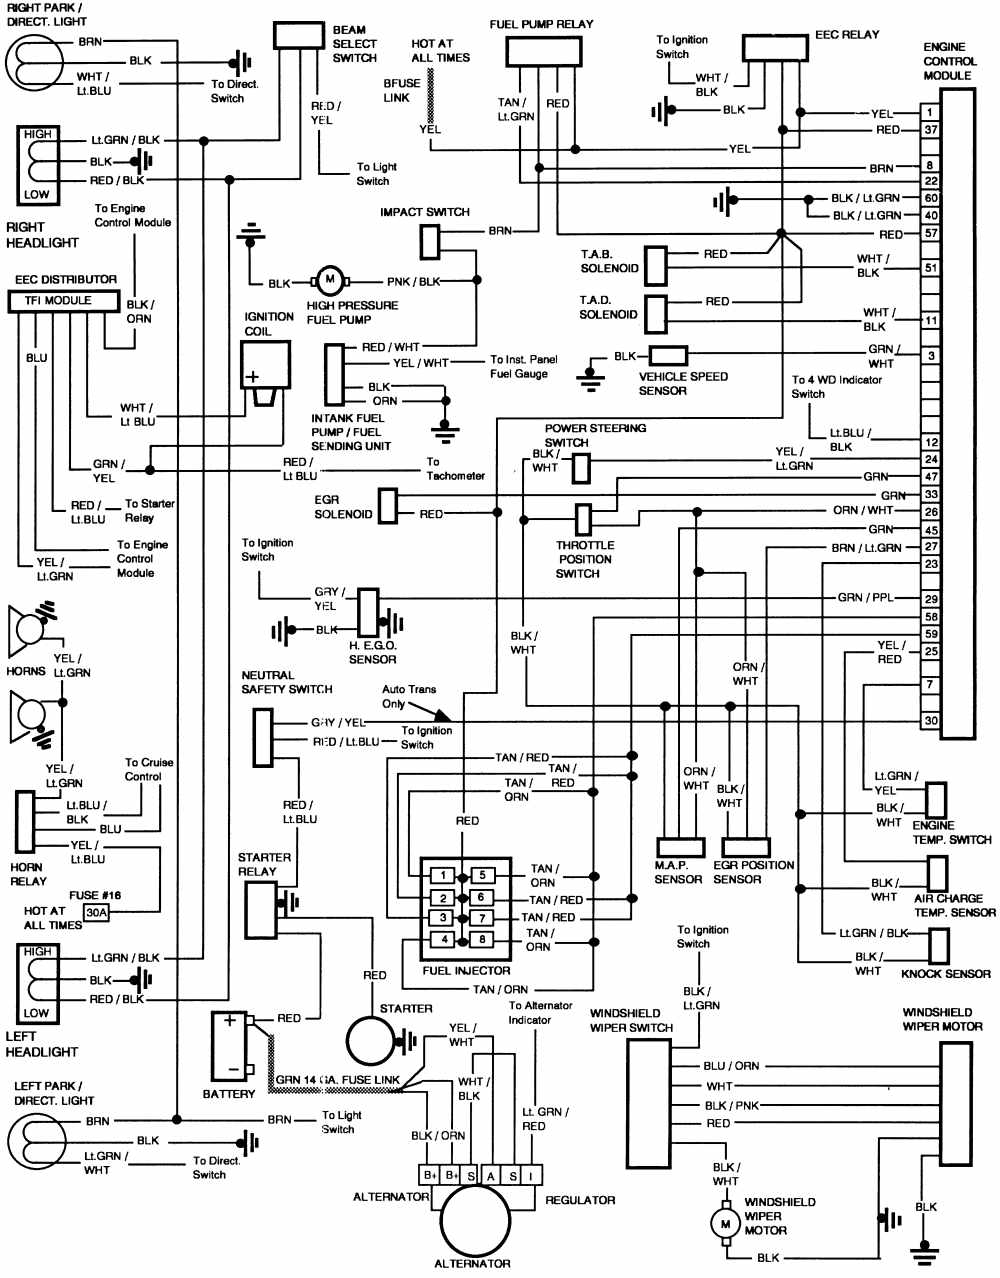 ford f 350 alternator wiring diagram with Ford E 150 Engine Diagram on 350 V8 Engine Diagram 1993 additionally RepairGuideContent likewise 4r70w Transmission Wiring Diagram likewise 79 Ford Truck Duraspark Ignition Wiring Diagram furthermore 1977 Chevy Trucks.